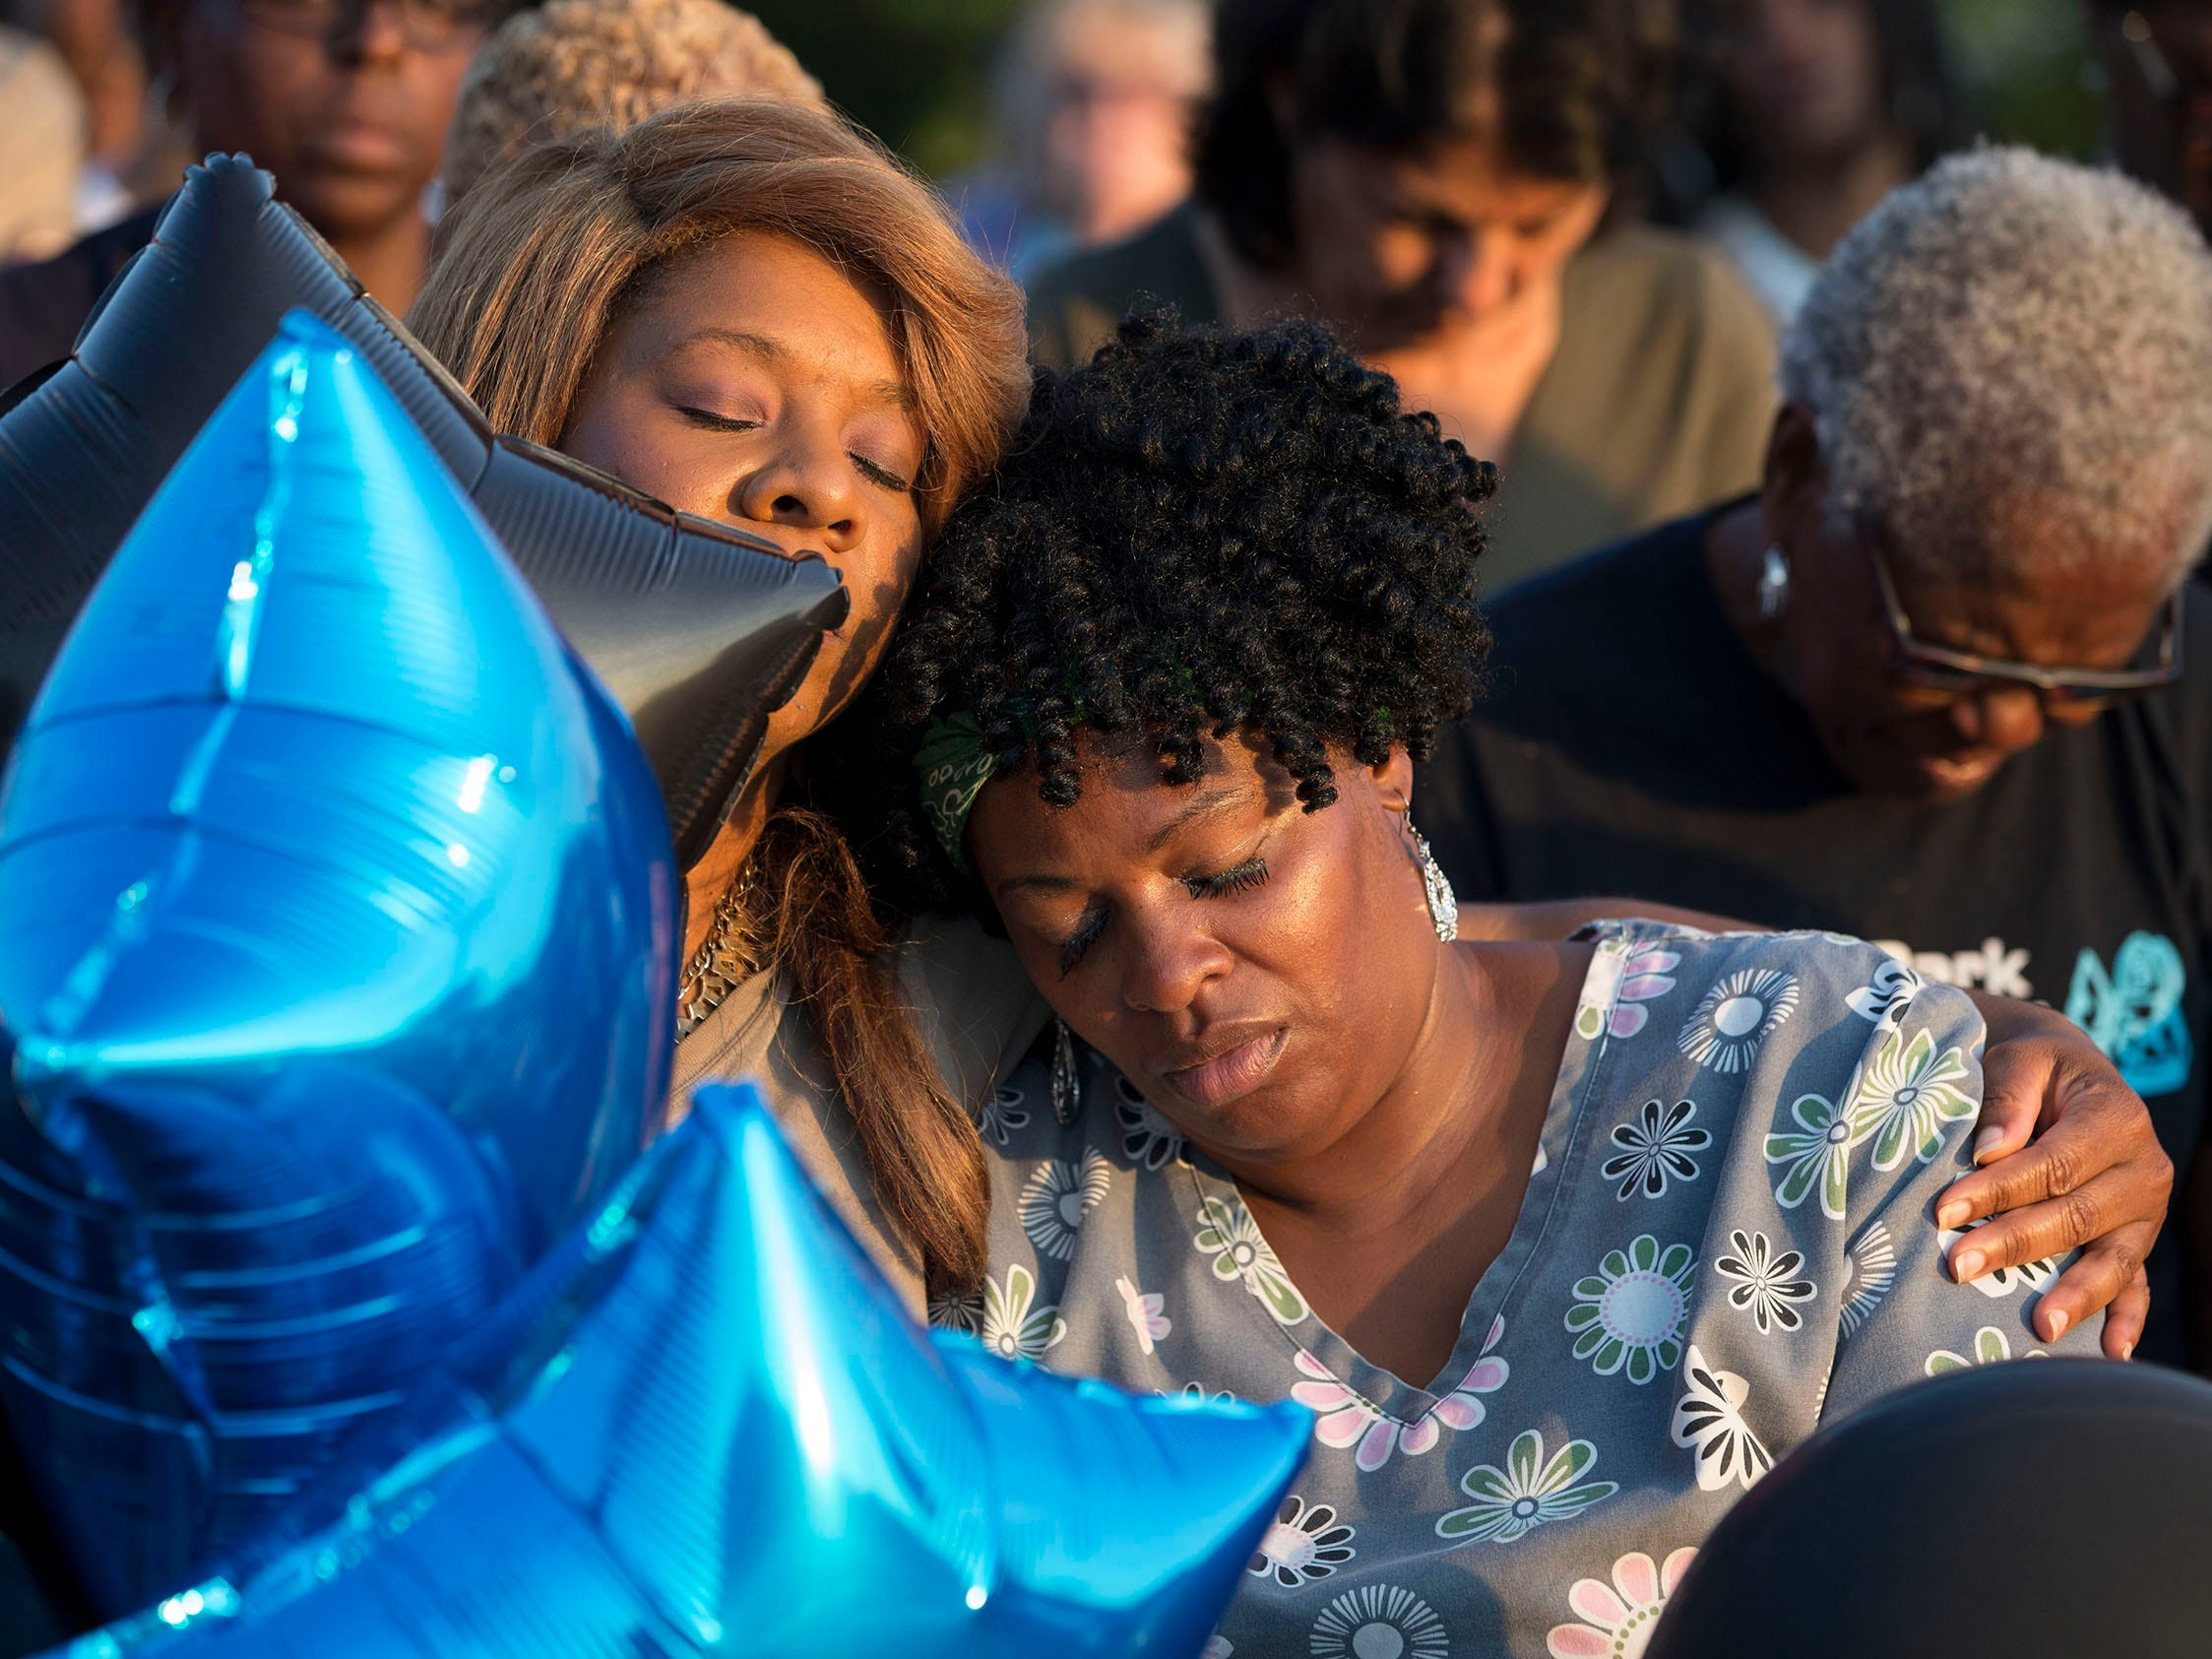 Stacy Walker of Asbury Park remembers James  during the vigil. Members of the Asbury Park community come together at the Donald Hammary Basketball Courts to remember the life of James Famularo who lost his life in a fire this past week.  Asbury Park, NJ on Thursday, July 12, 2018